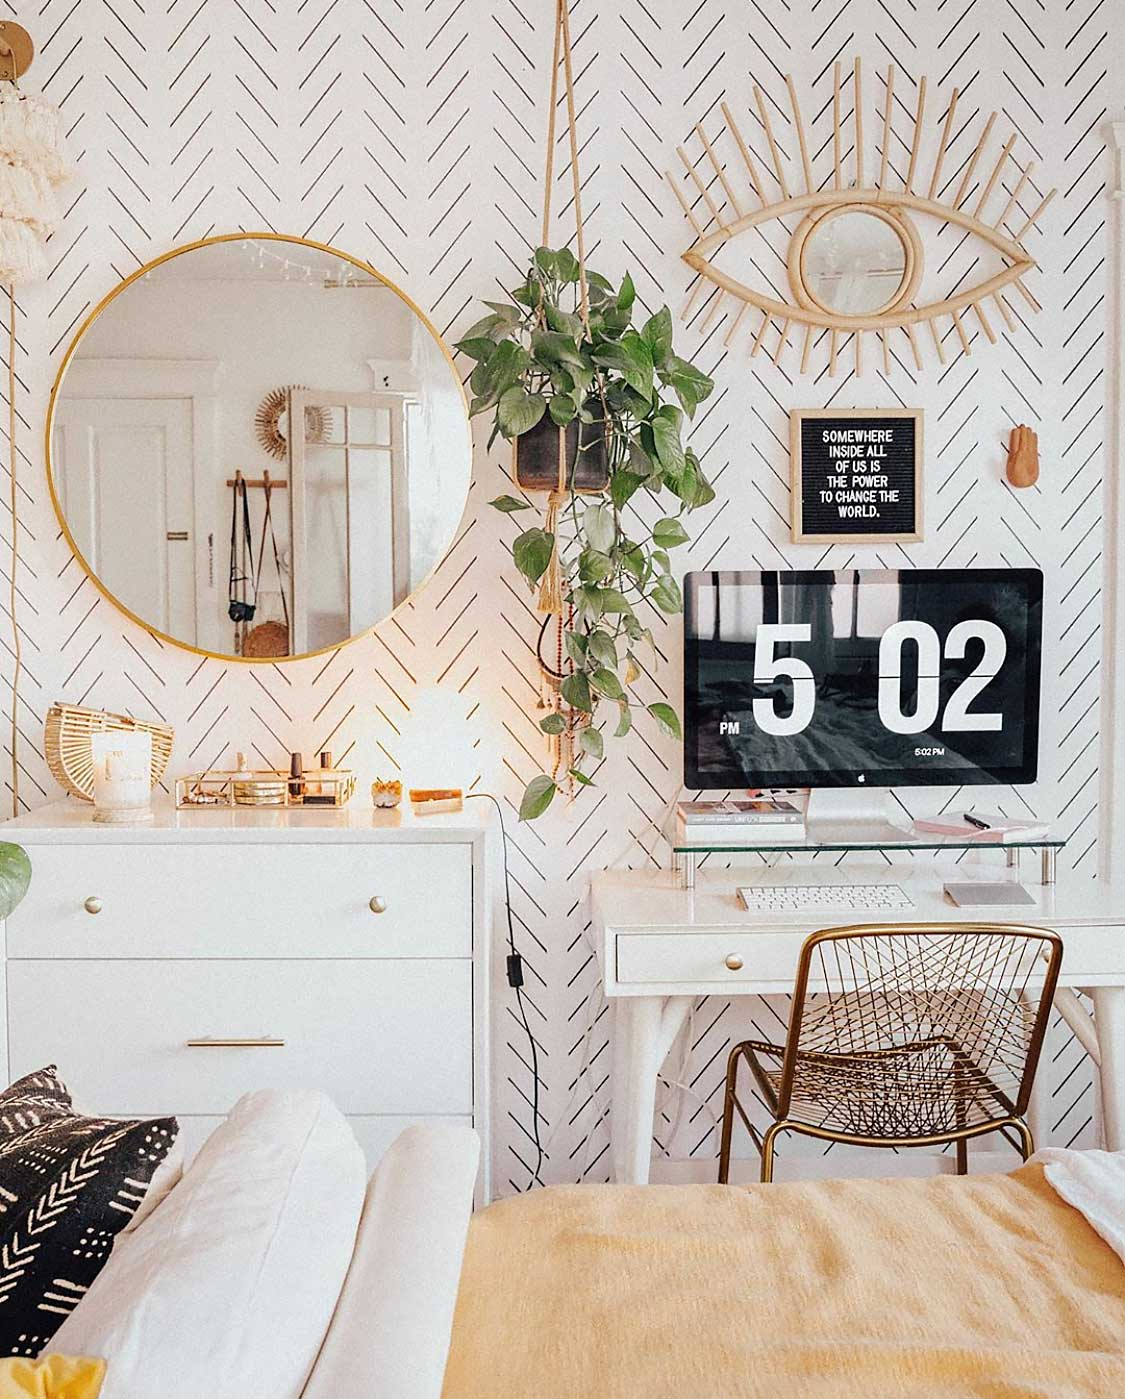 House Decorationdesign: 5 Beautiful Home Office Ideas & Tips On How To Decorate